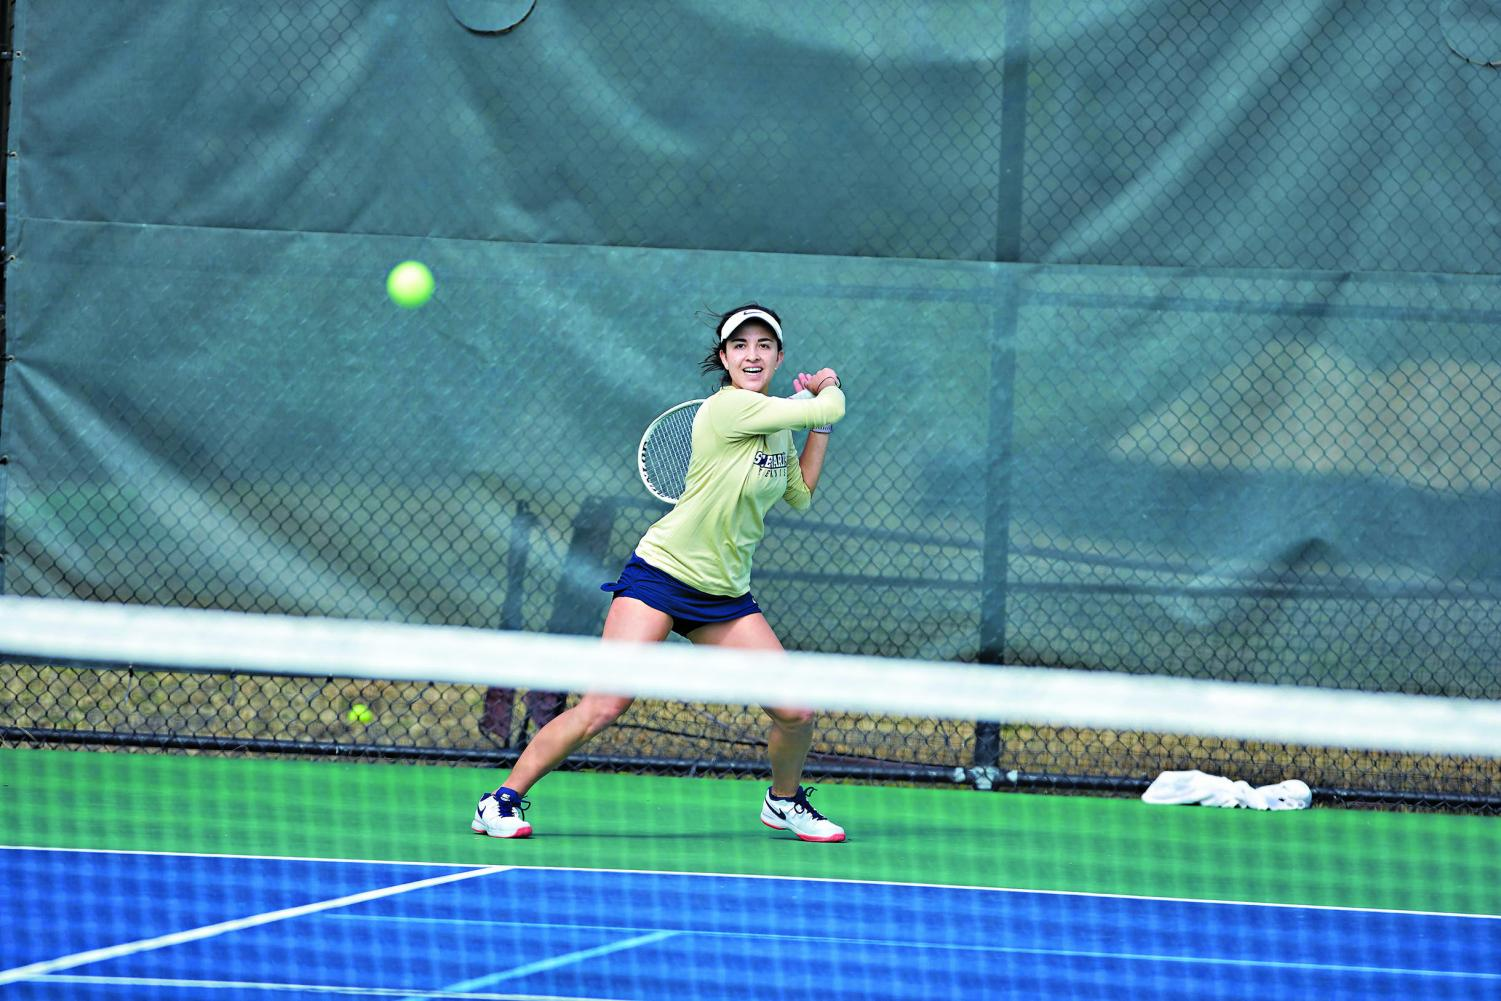 Pao Carpio left her mark on the women's tennis program as her athletic legacy led to national recognition.